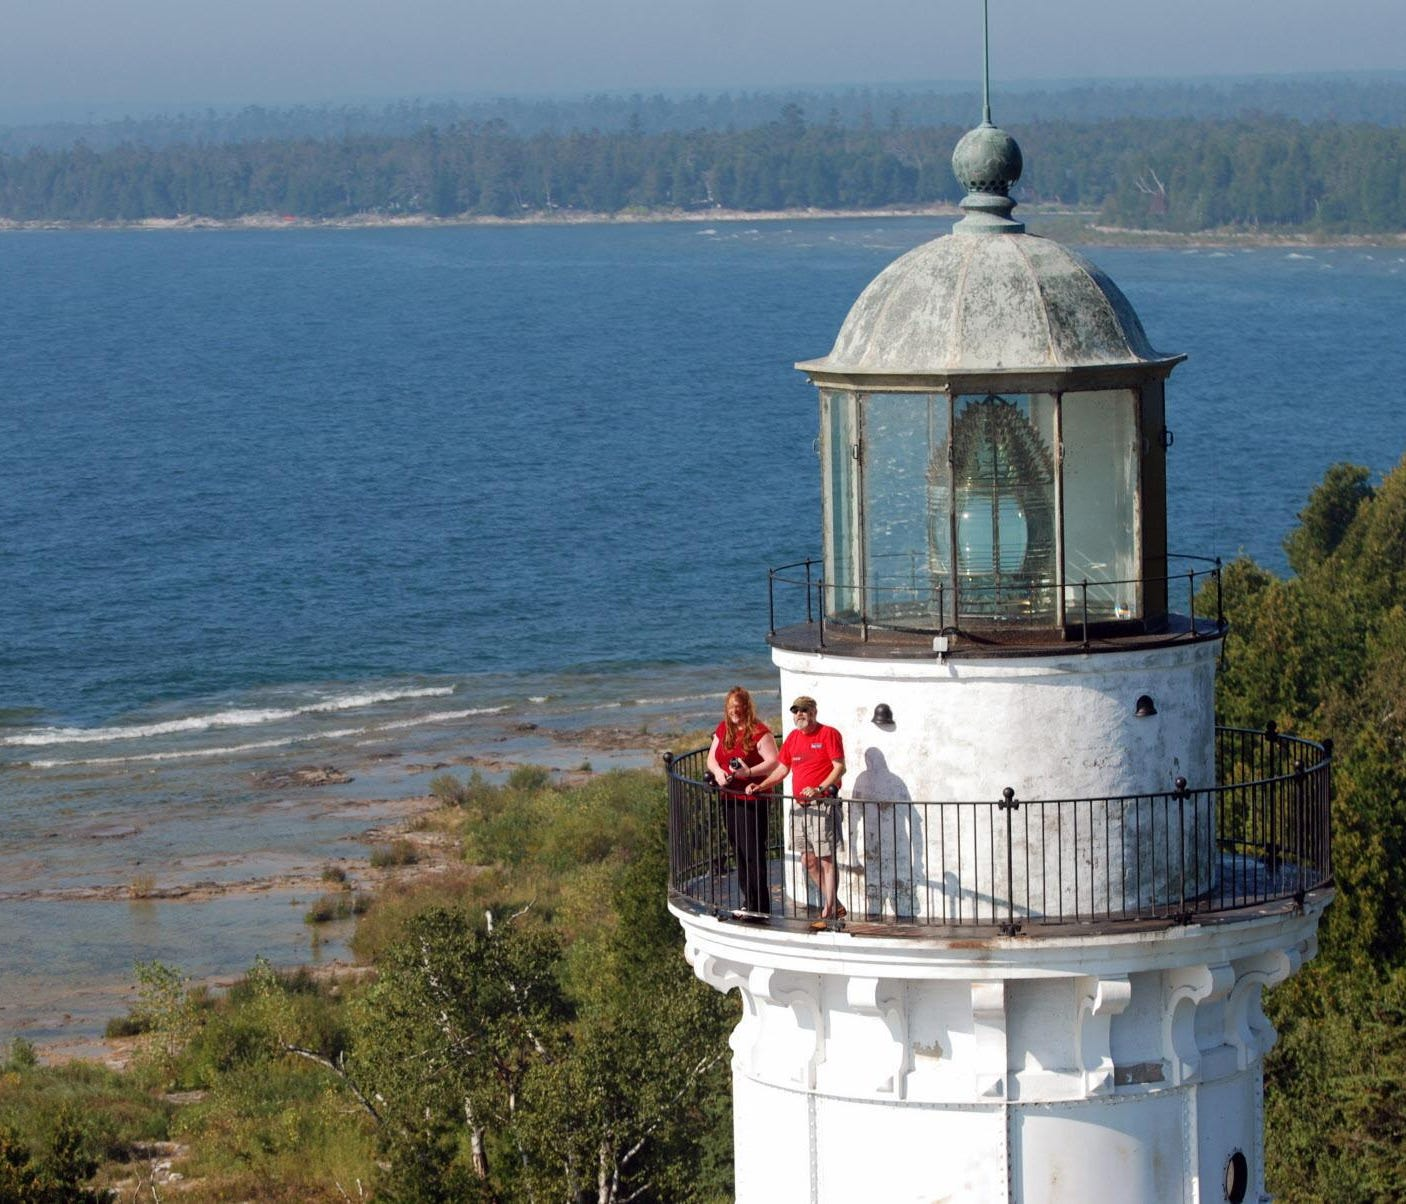 Visitors can climb the 97 steps to the top the Cana Island Lighthouse tower for a birds-eye view of Lake Michigan and Door County.